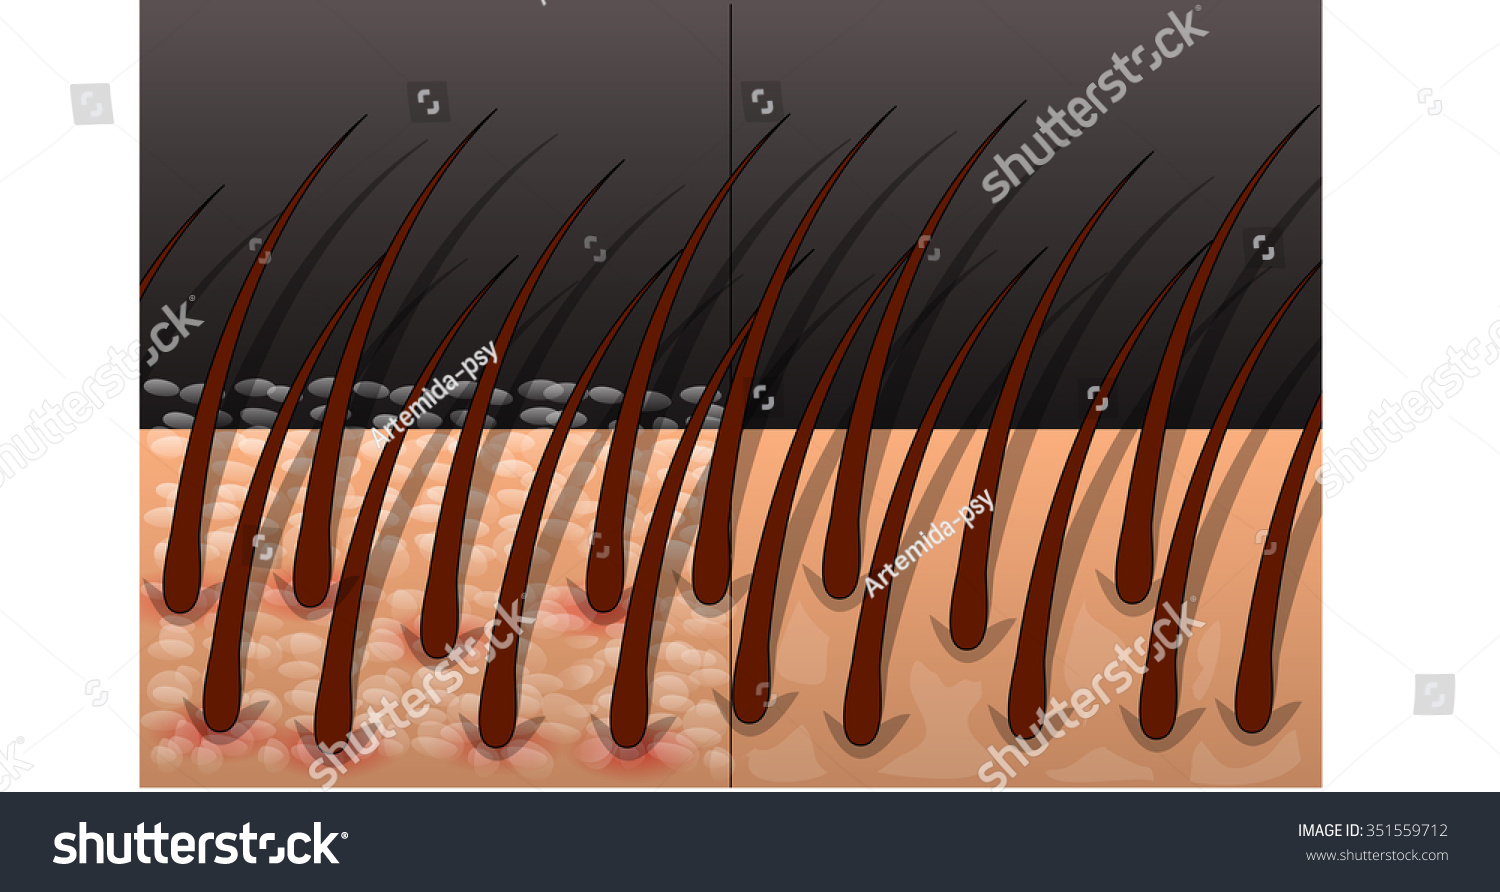 Healthy Scalp Scalp Affected By Inflammation Stock Vector